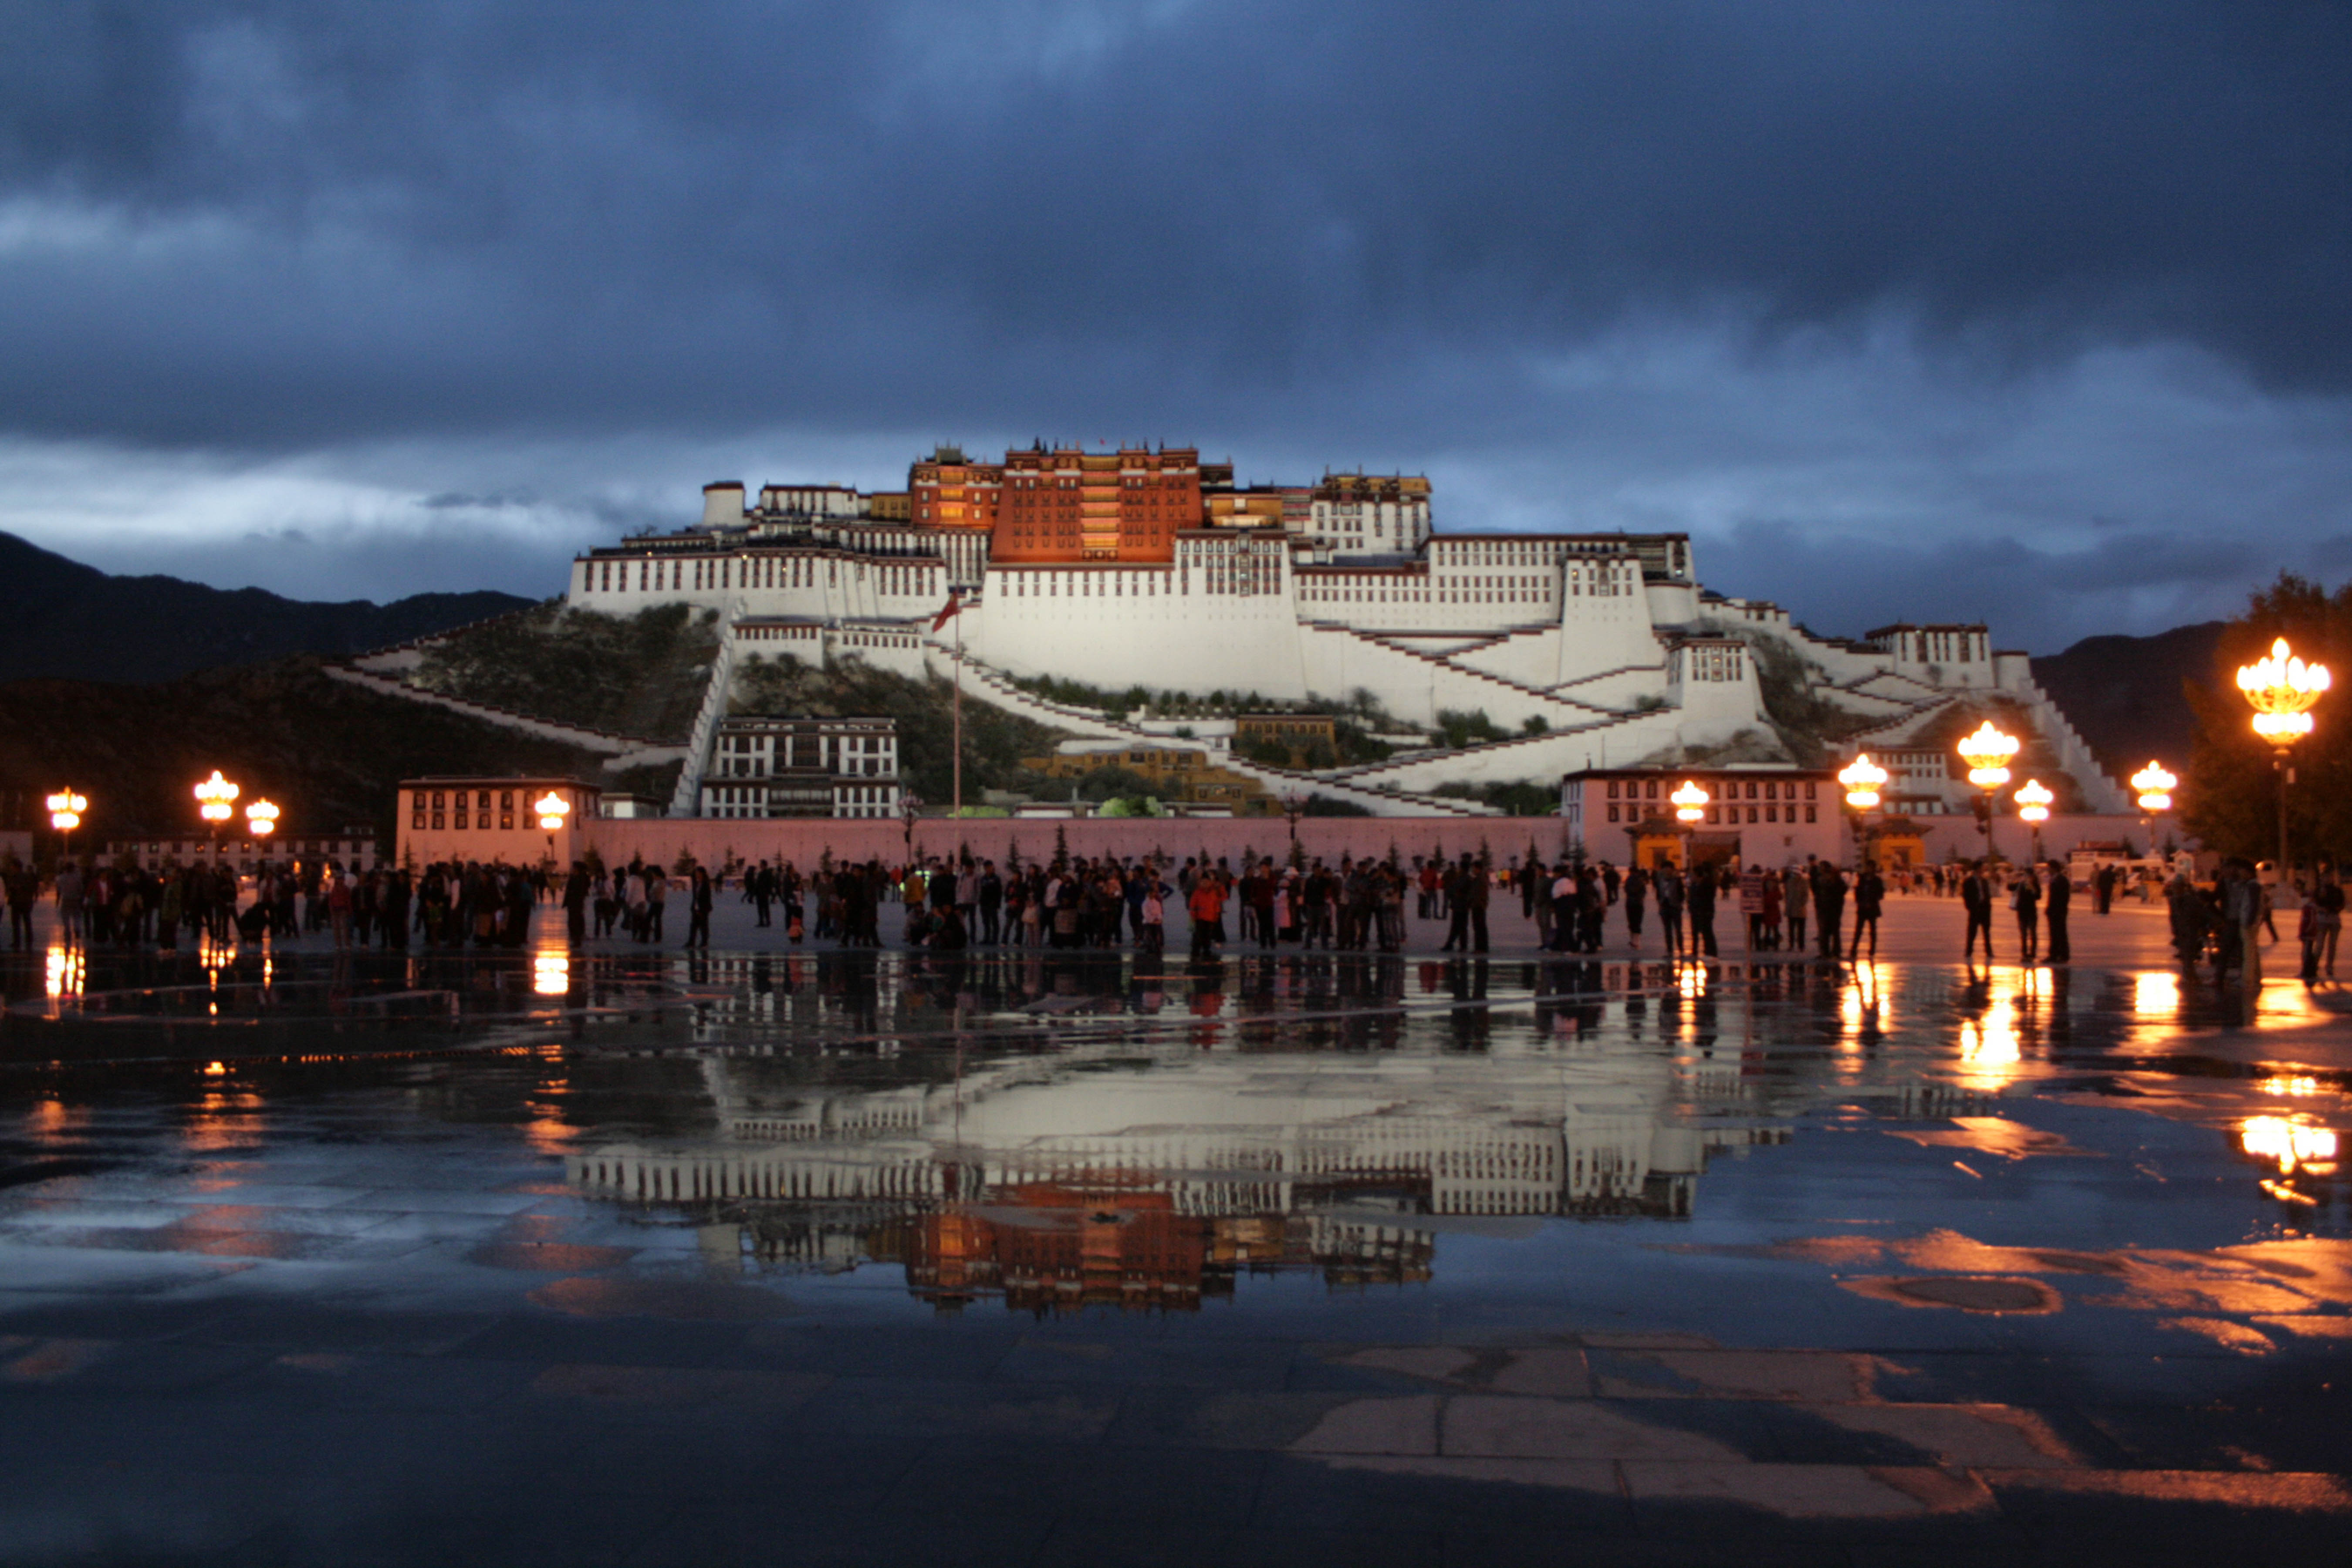 Lhasa among 12 PRC cities to host Indian cultural fest